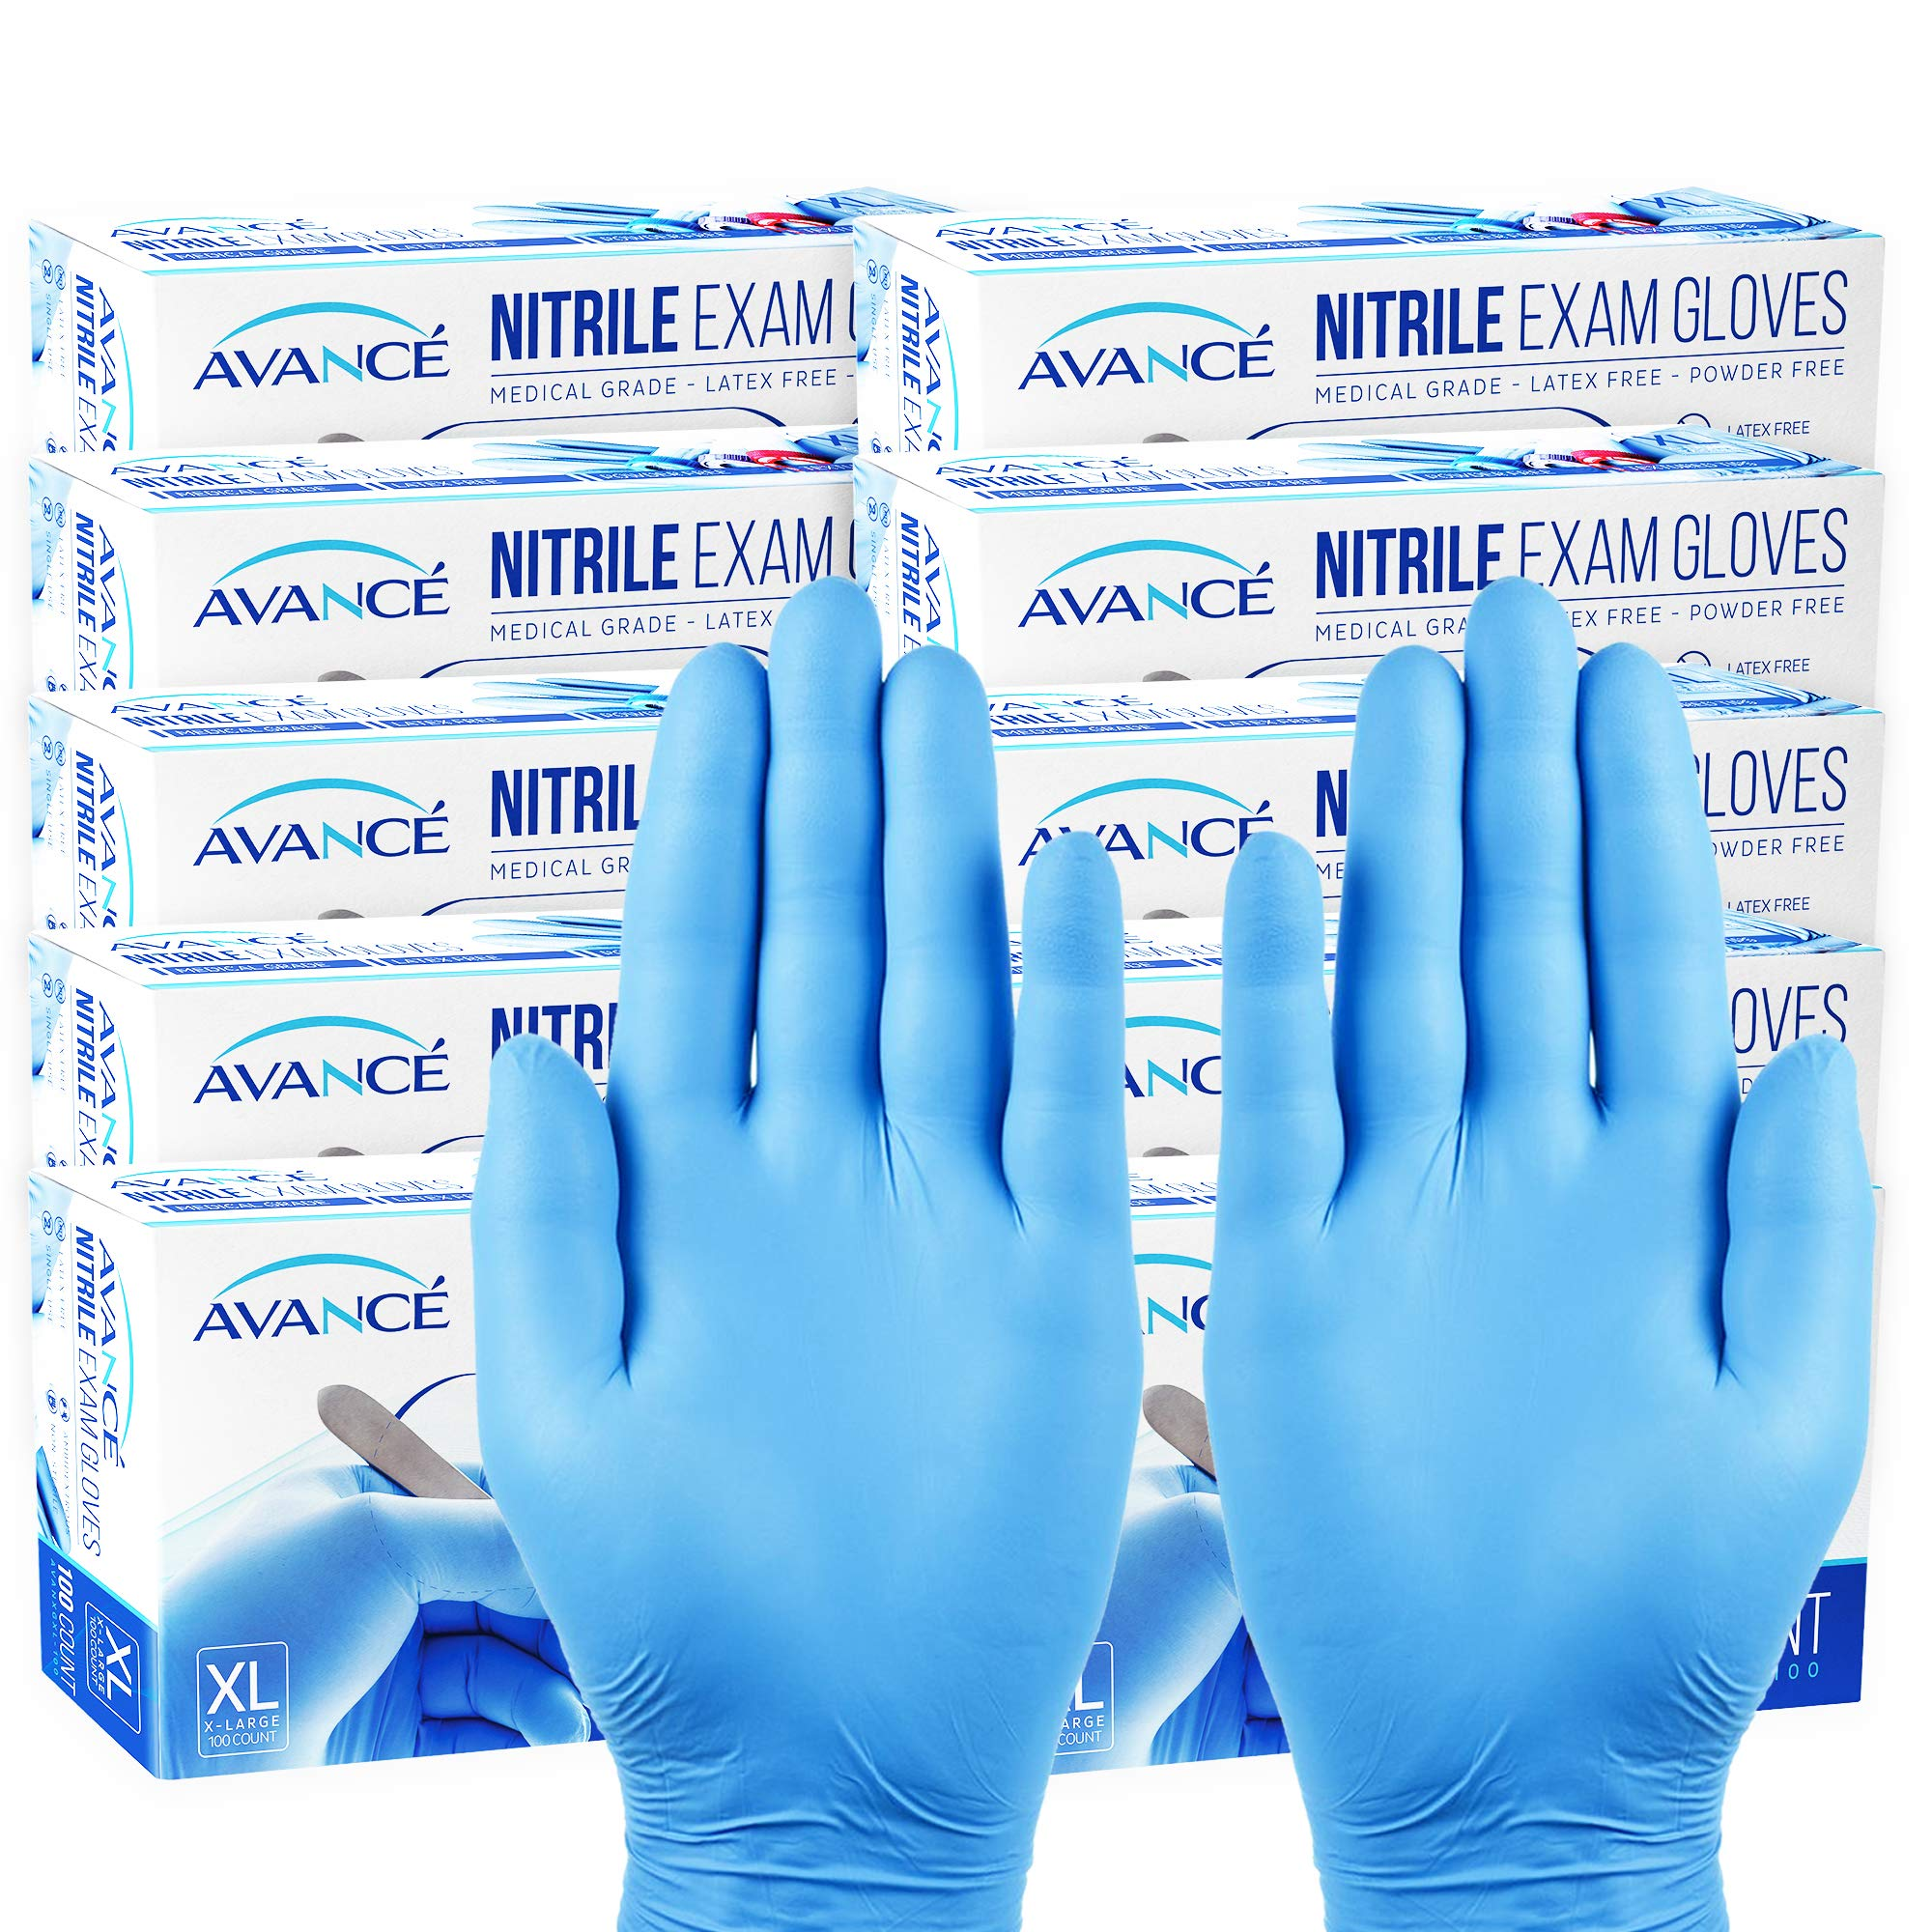 Avancé Nitrile Exam Gloves Medical Grade Powder-Free Textured Fingertips Latex-Free Synthetic Rubber Non-Sterile Disposable Ambidextrous Single Use, 3 Mil Thickness, Blue, X-Large, 10-Pack (1000) by AVANCÉ